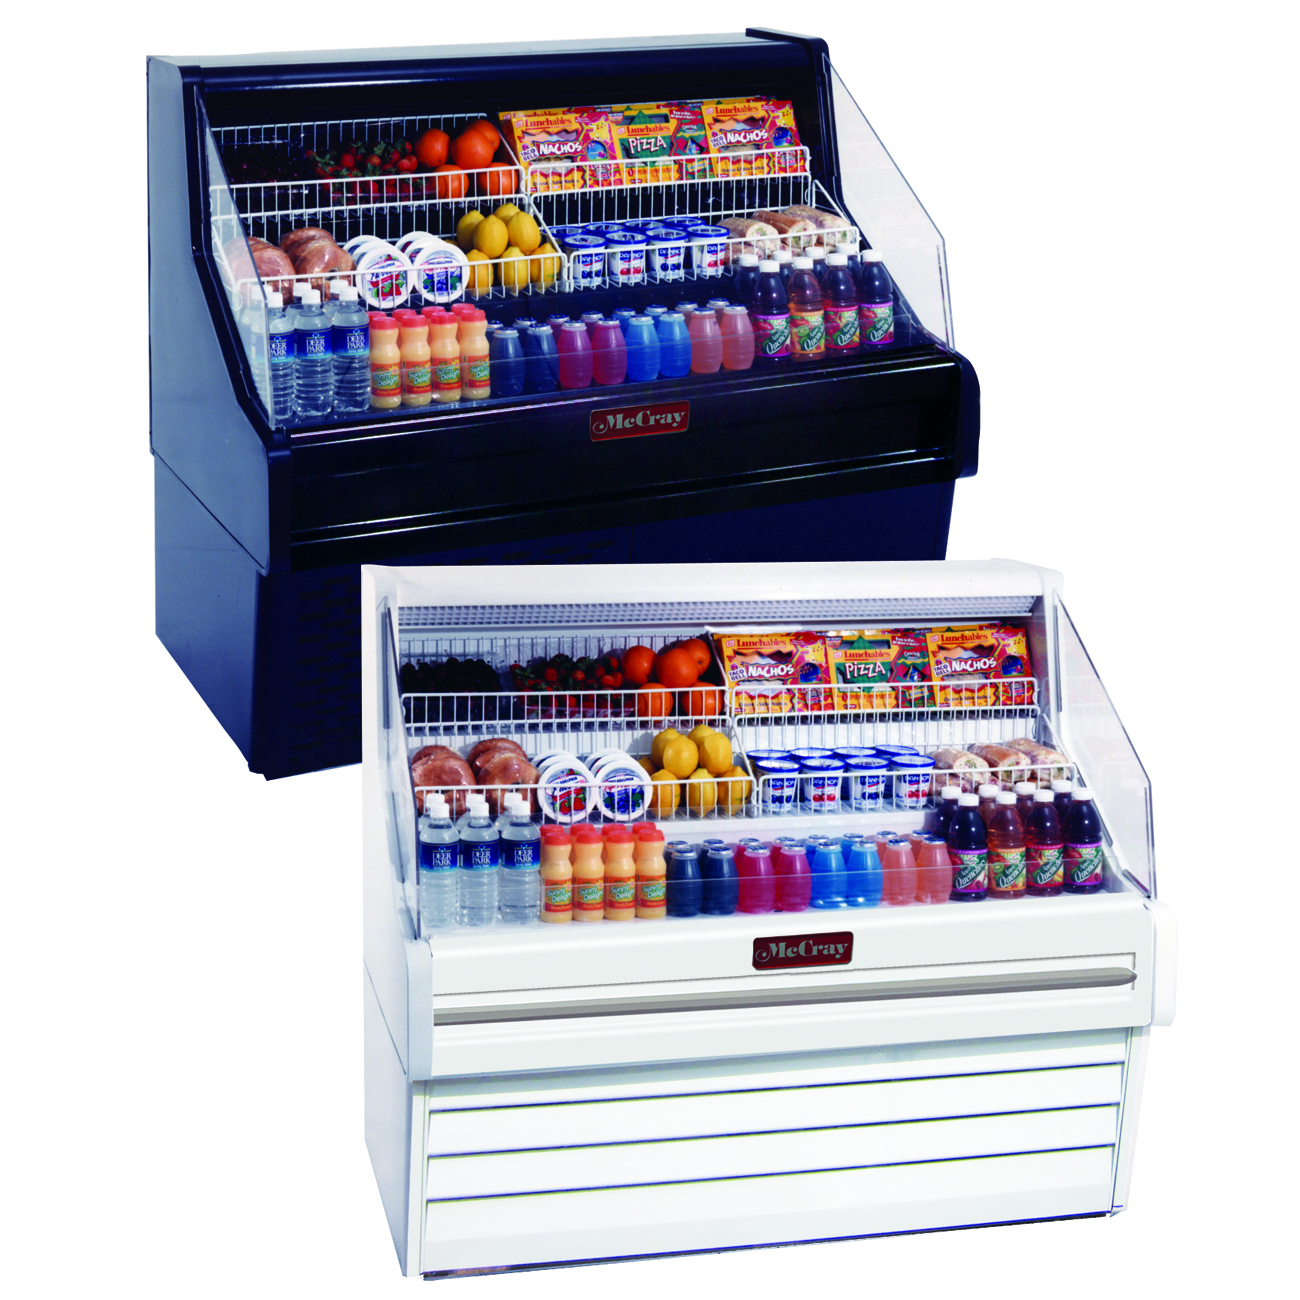 Howard-McCray SC-OS30E-5-B-LED merchandiser, open refrigerated display